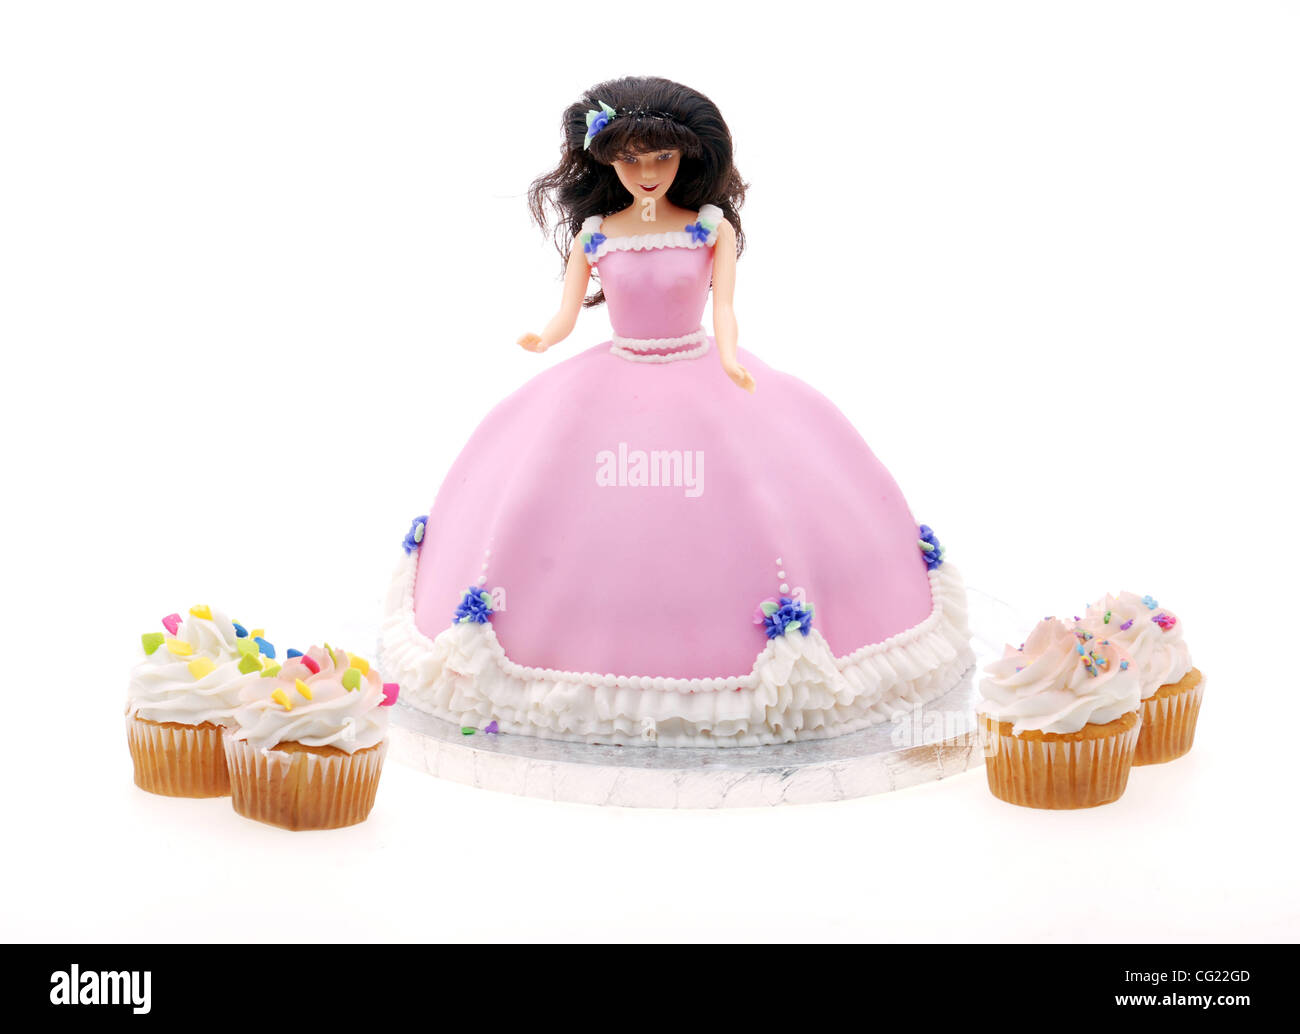 Outstanding A Birthday Cake In The Shape Of A Doll July 20 2007 Sacramento Personalised Birthday Cards Cominlily Jamesorg